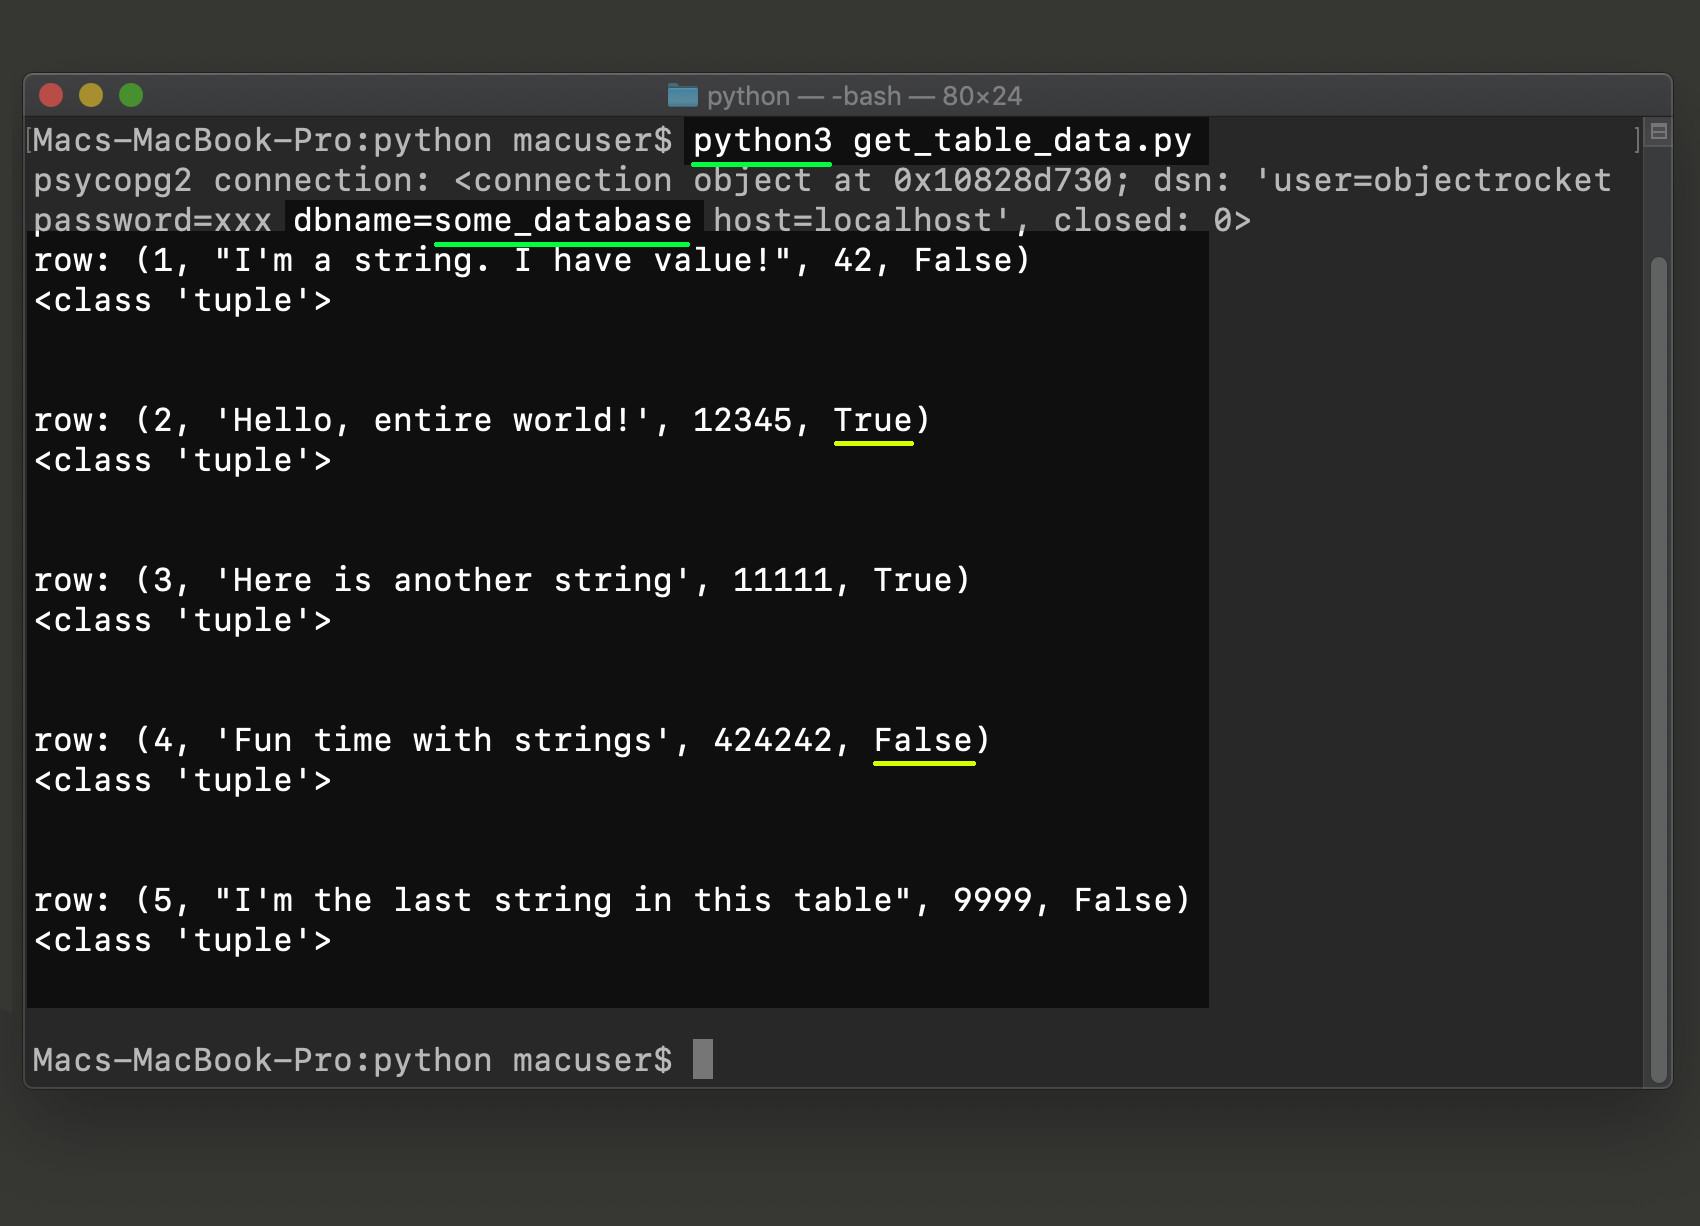 Screenshot of a Python 3 script running in a terminal window to get the table data from a PostgreSQL database